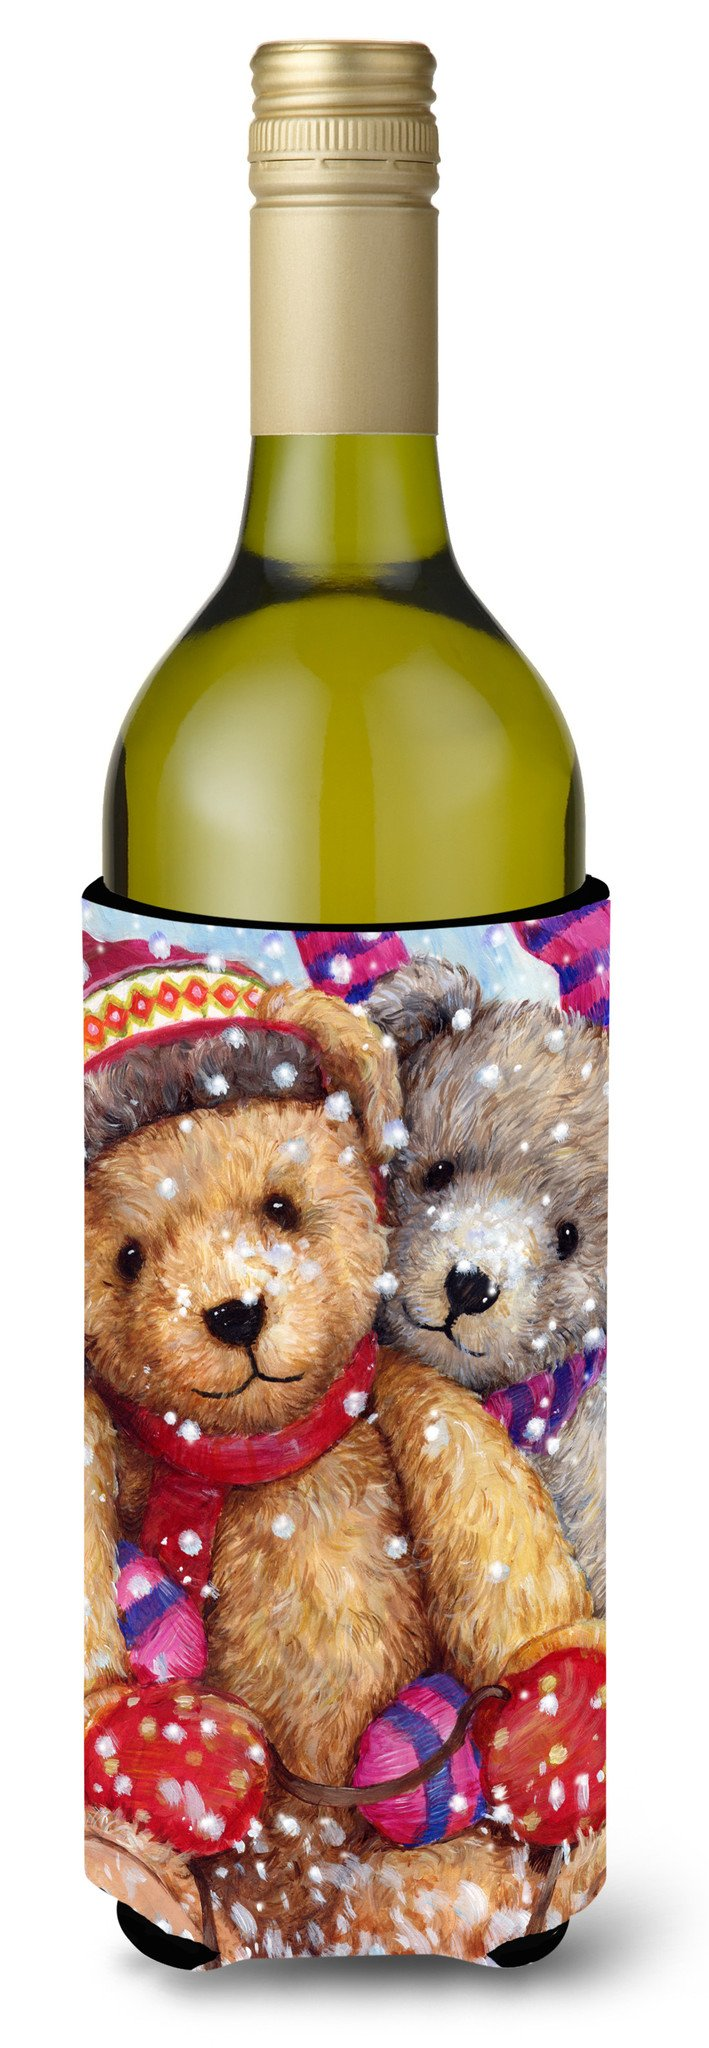 Winter Snow Teddy Bears Wine Bottle Beverage Insulator Hugger CDCO0461LITERK by Caroline's Treasures